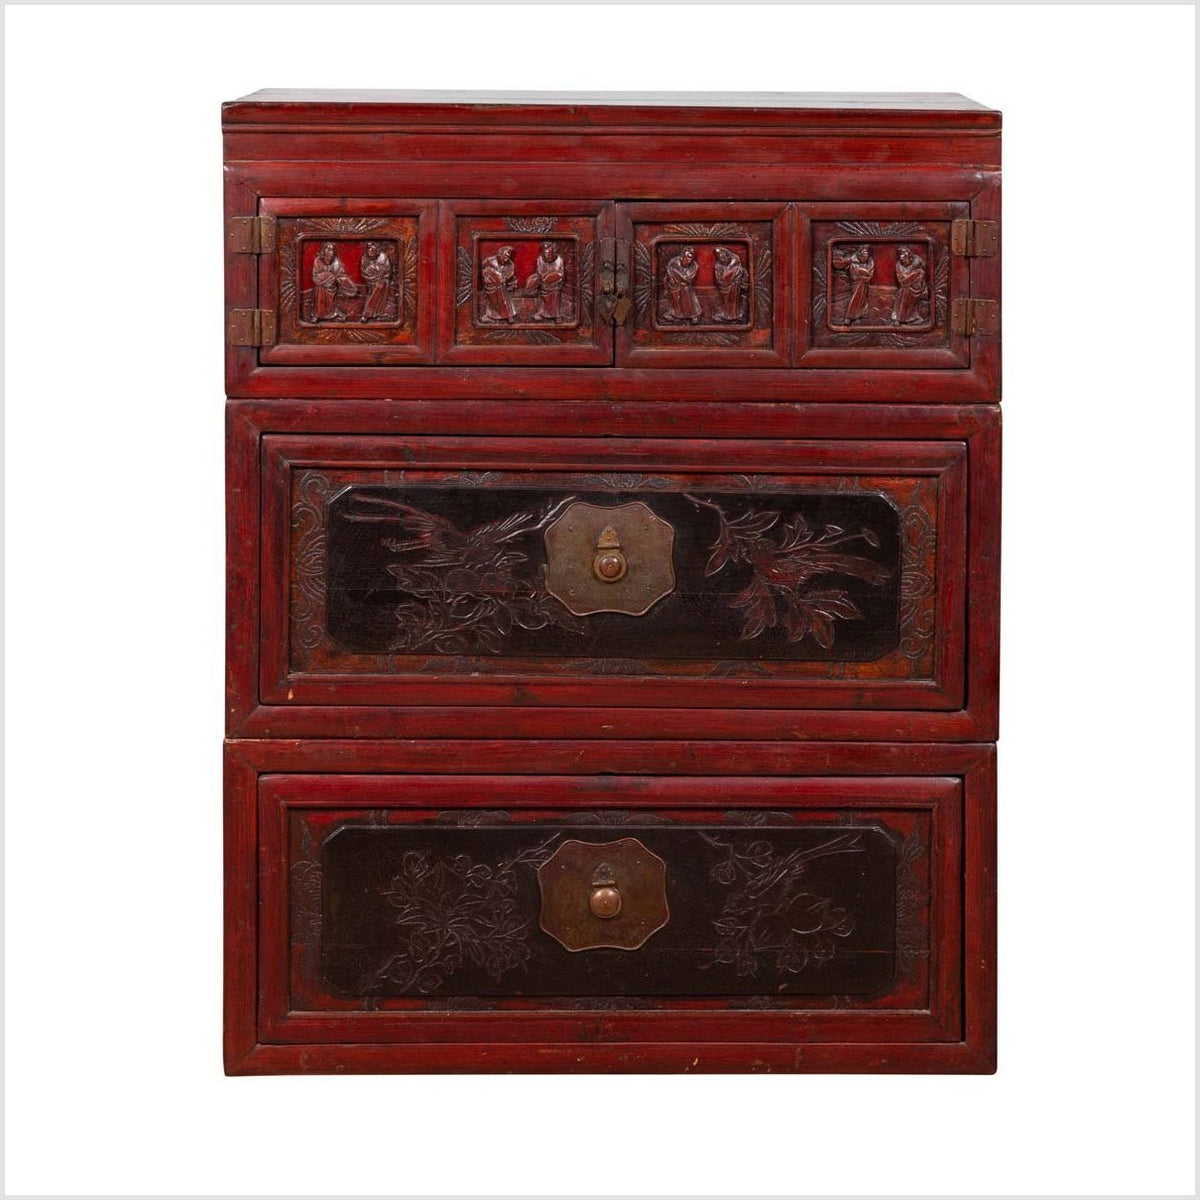 Antique Chinese Red and Black Lacquered Three-Section Chest with Carved Figures